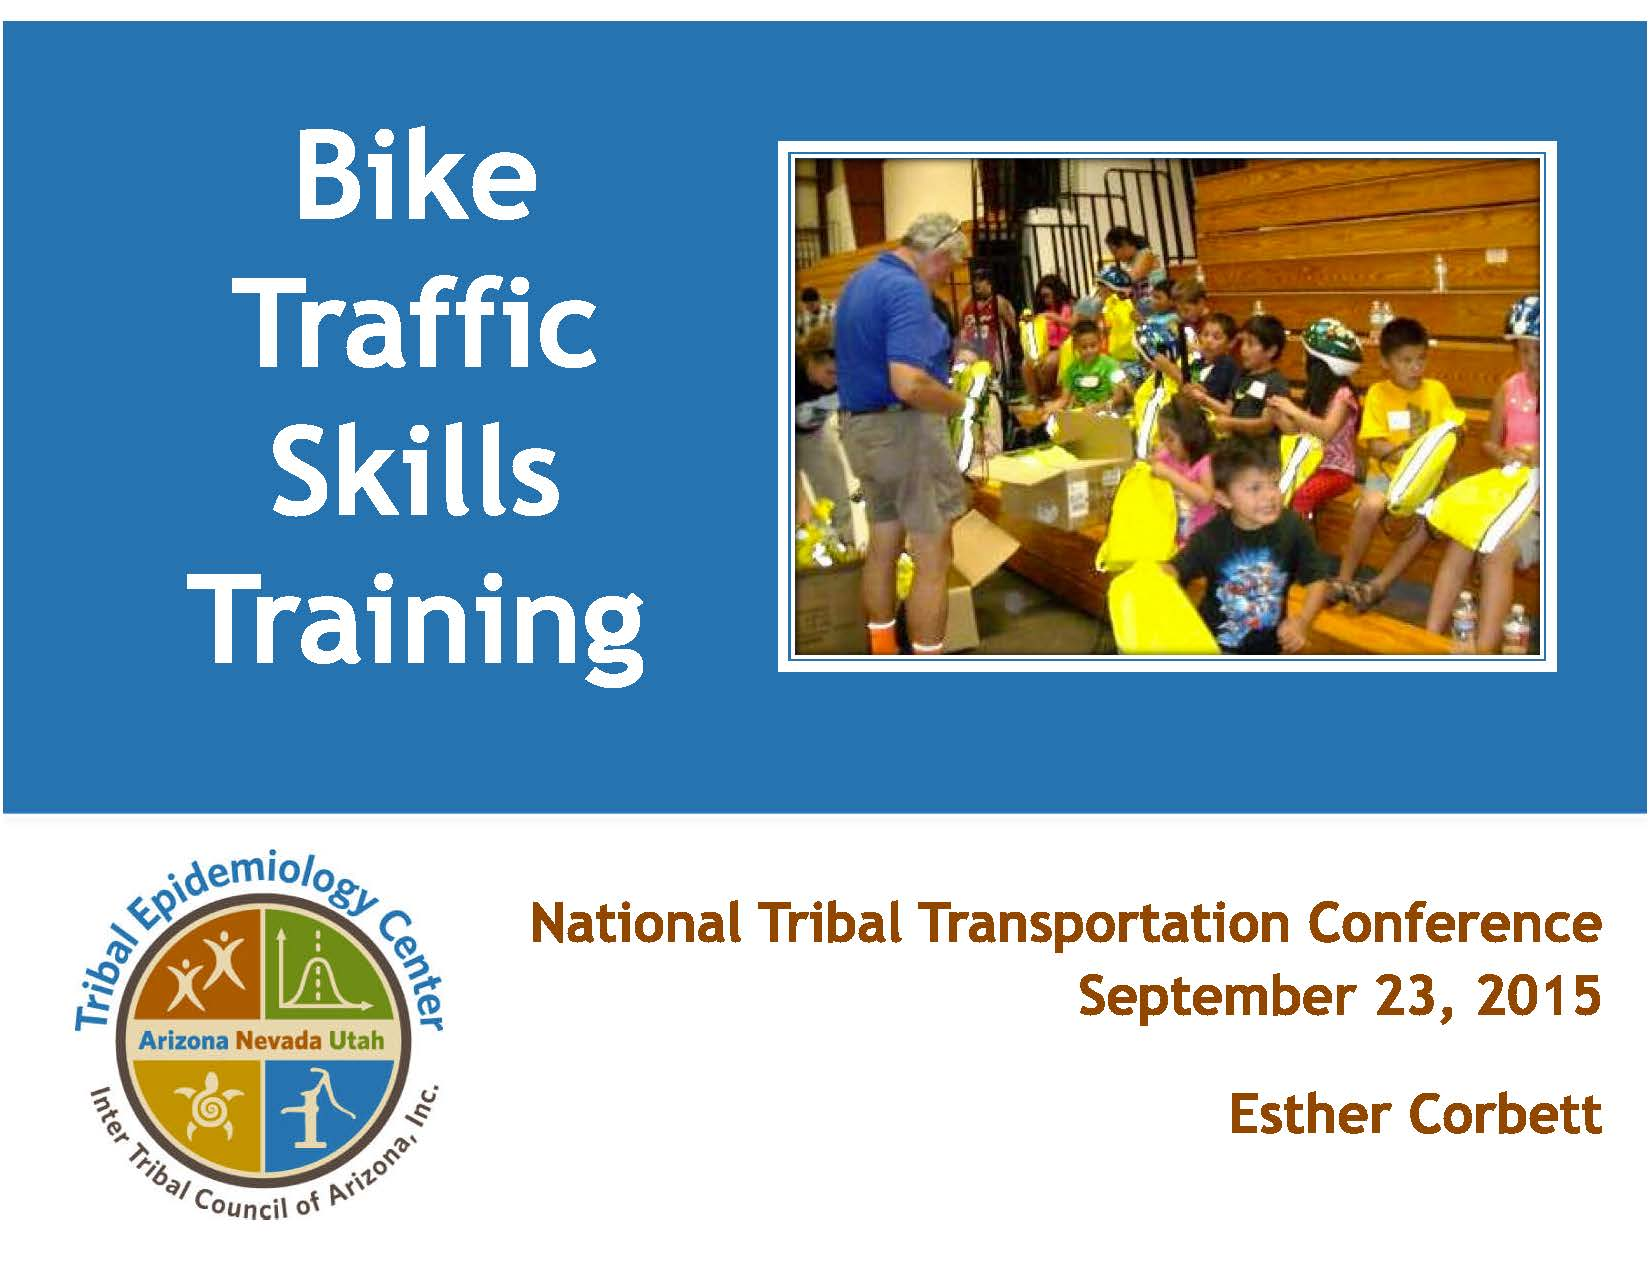 Bike Traffic Skills Training